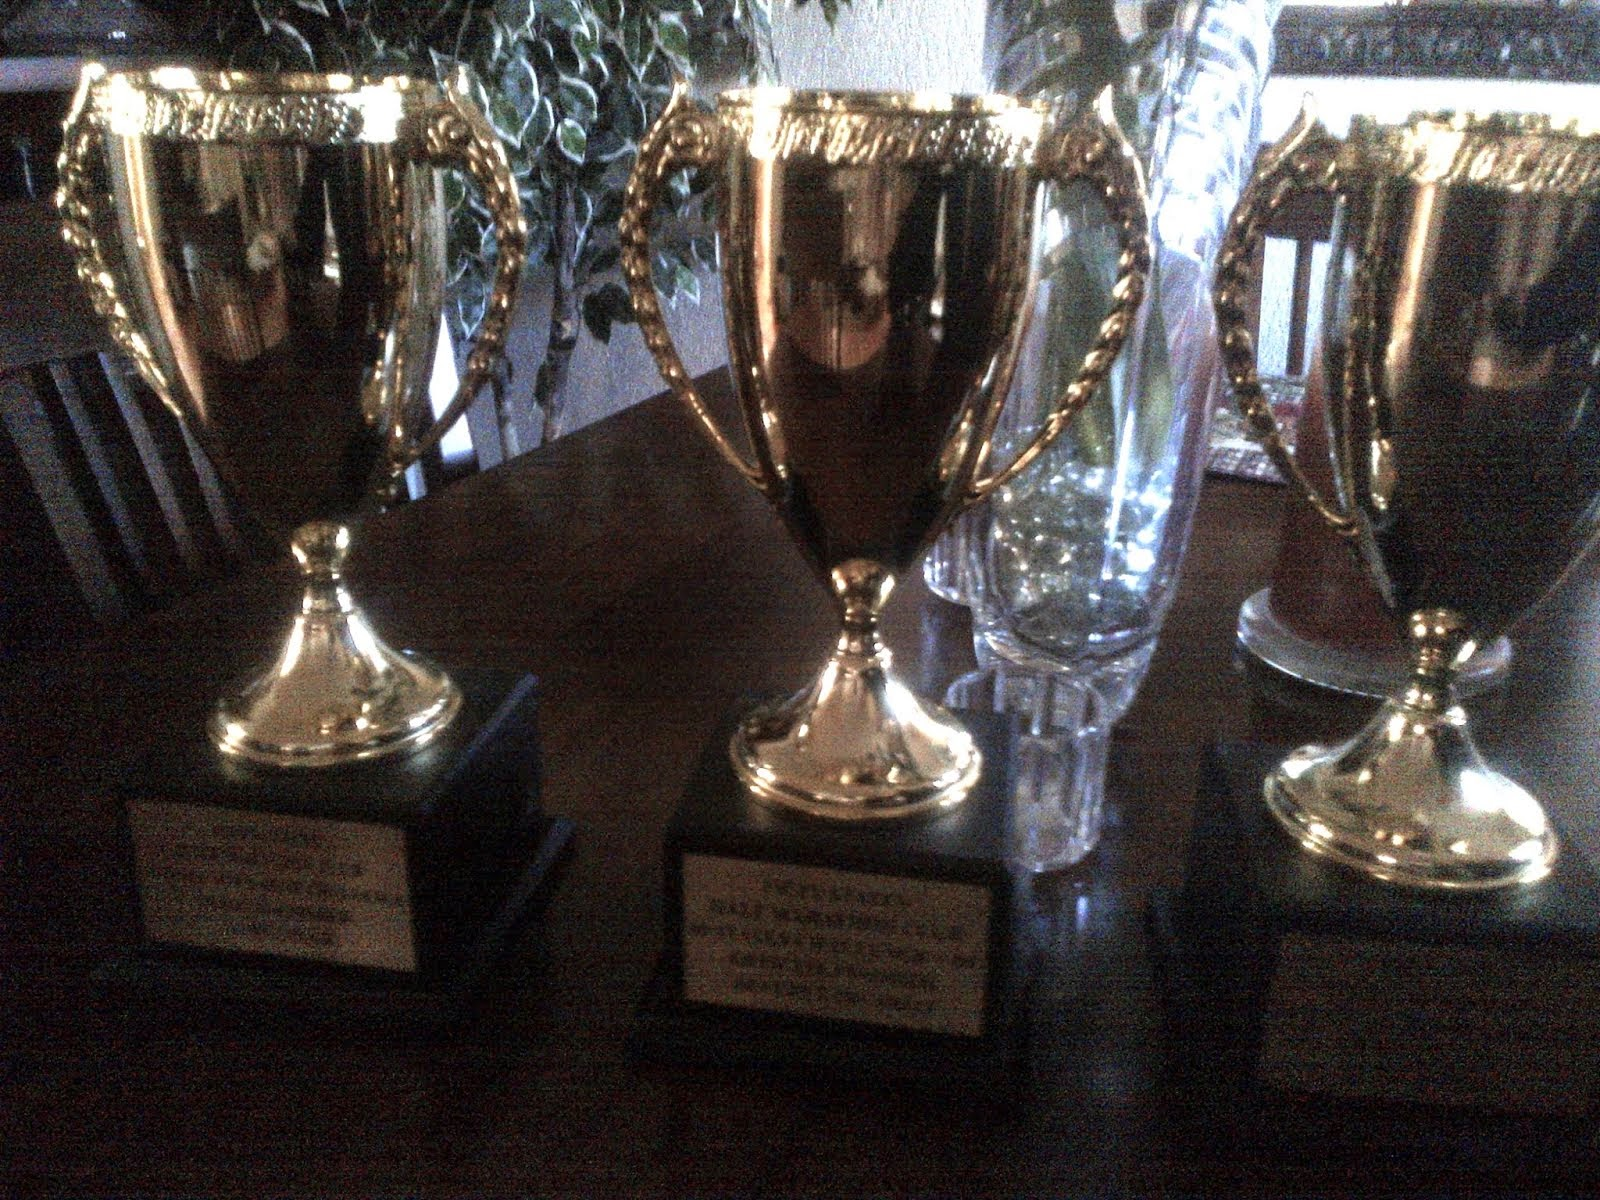 50 States Challenge Finisher Trophies